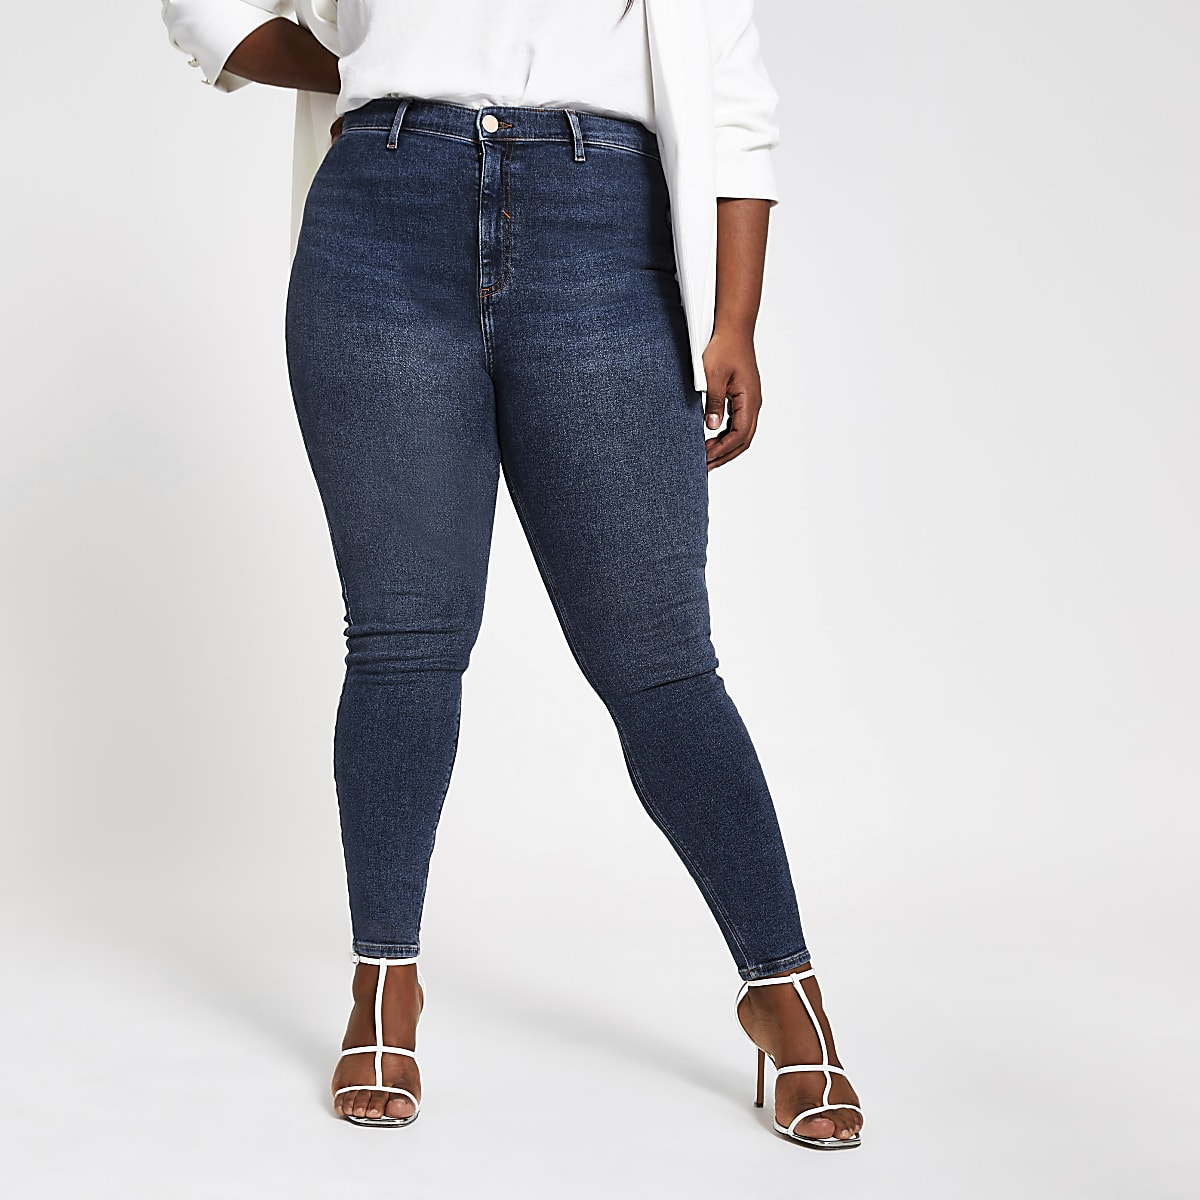 Plus blue denim Kaia high waist disco jeans